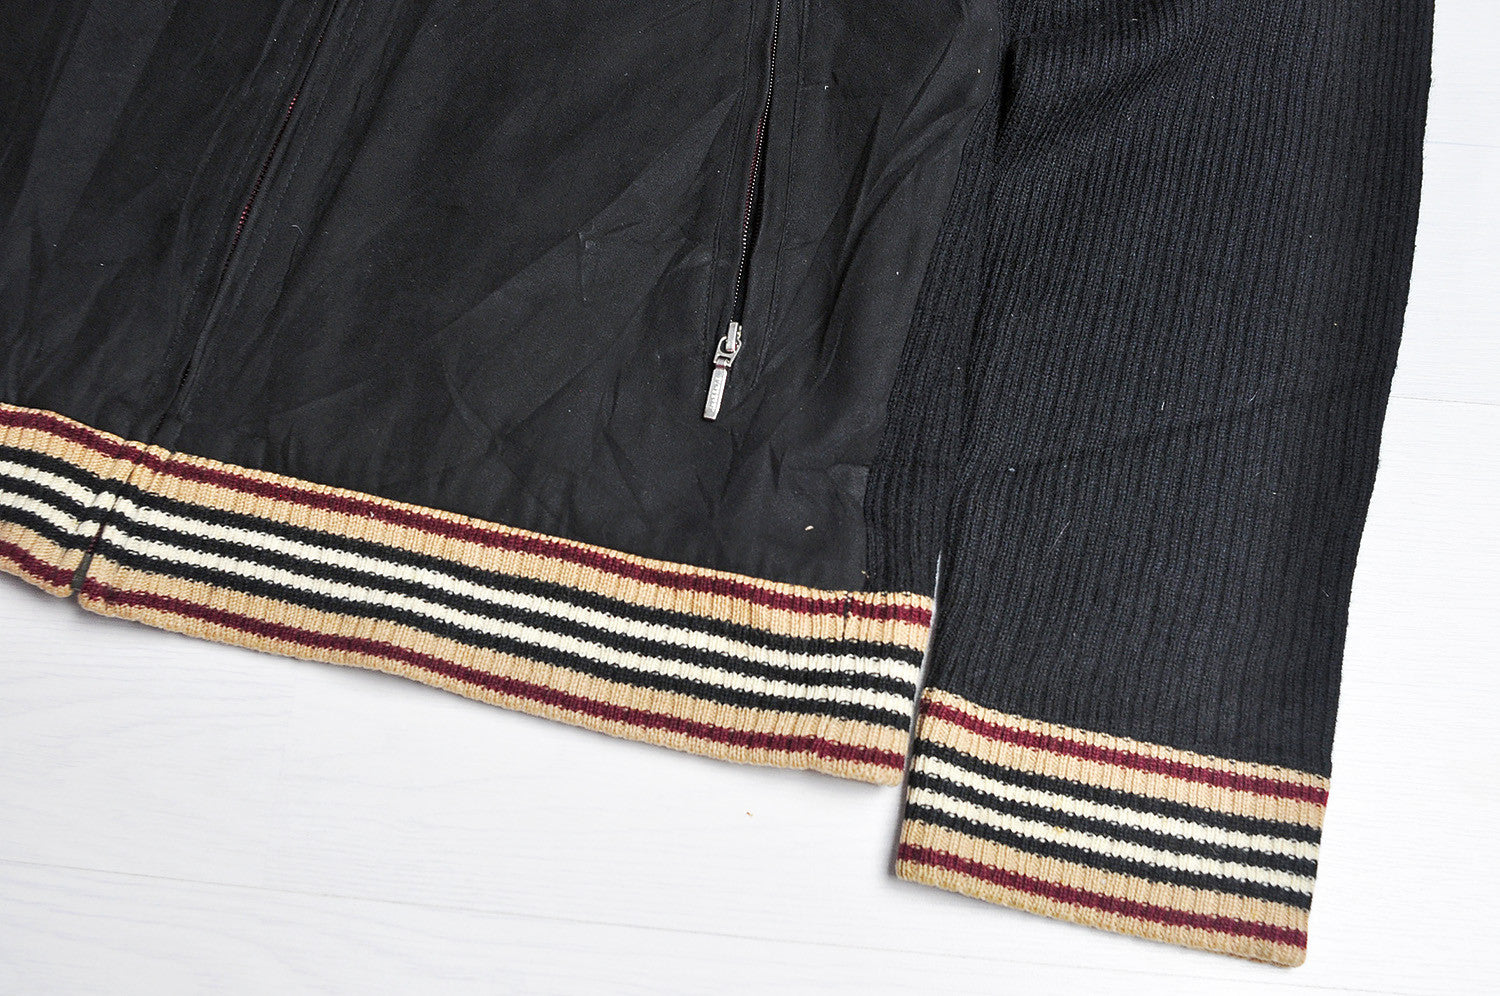 Vintage Burberry (Black Label) Raglan Half Knitted Bomber Jacket